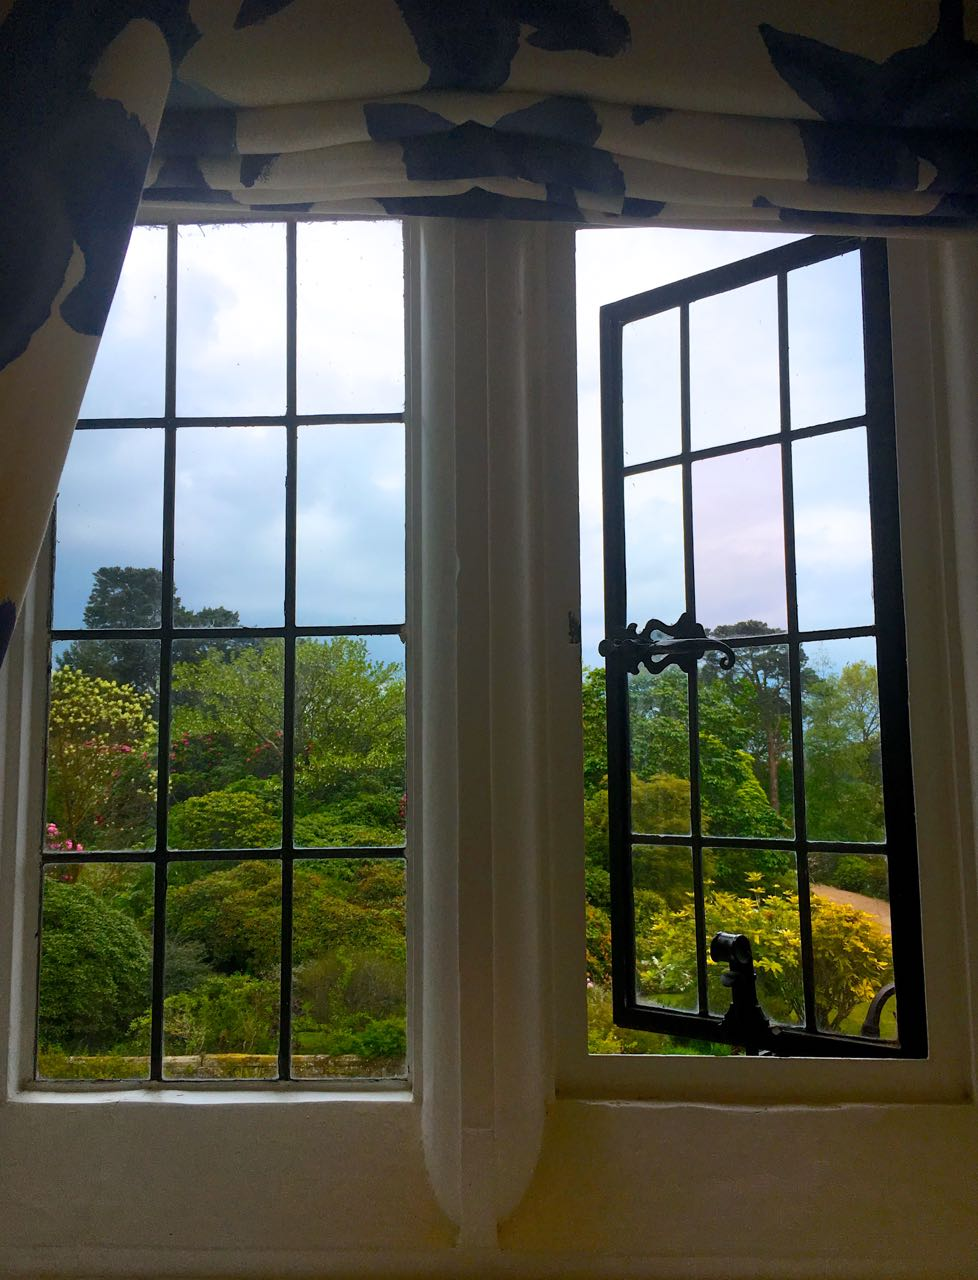 Quite a view from the loo at Gravetye Manor